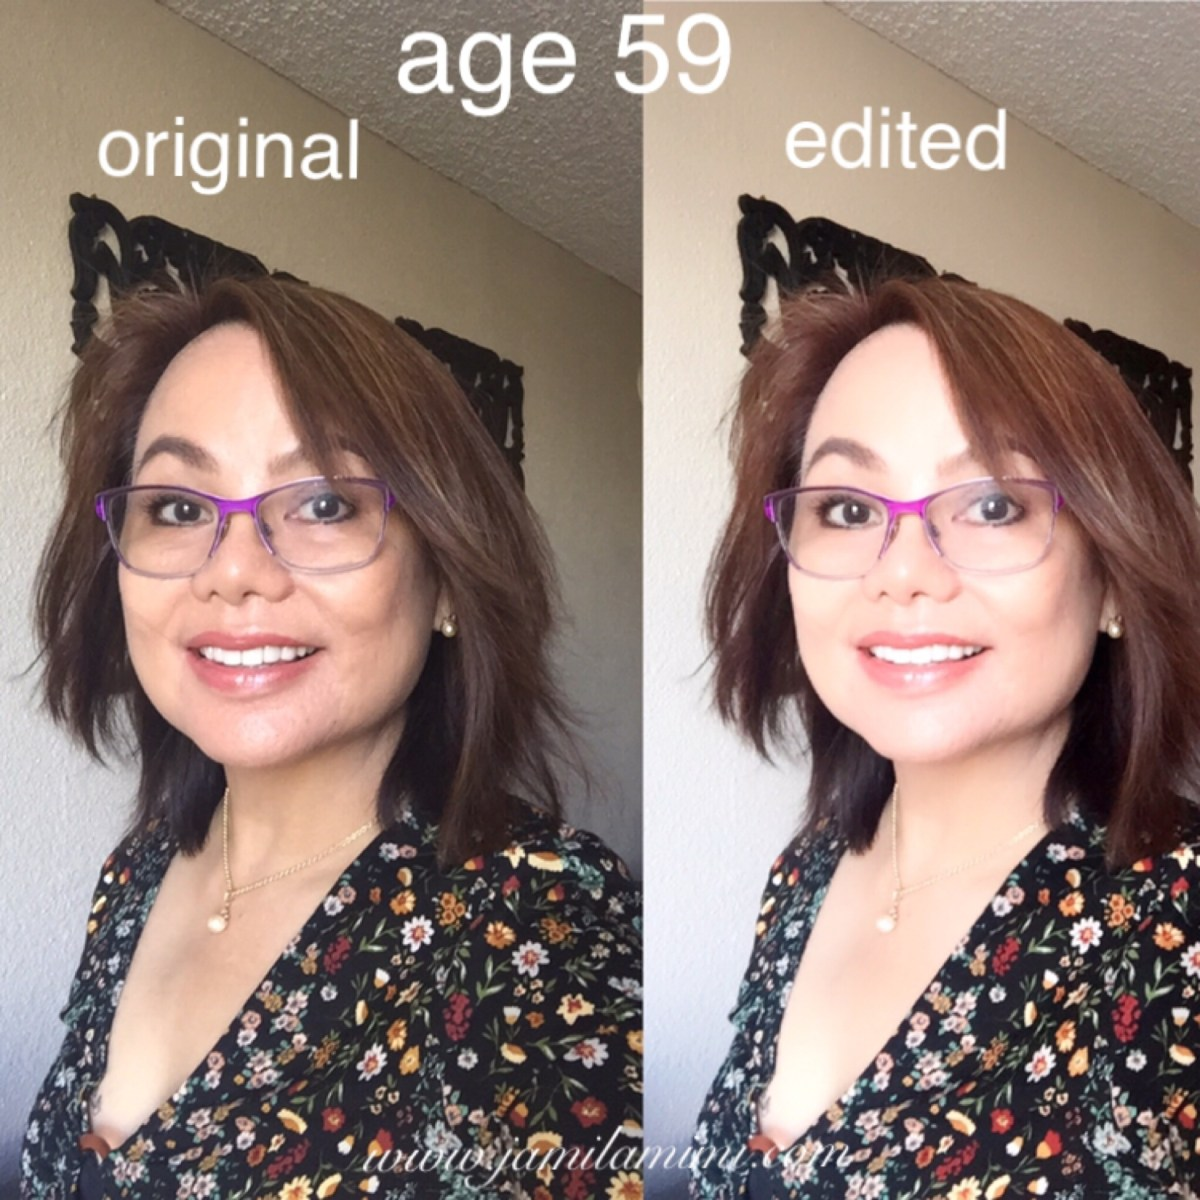 Age 59: Posing tips for beauties beyond fifty (aka: older women)